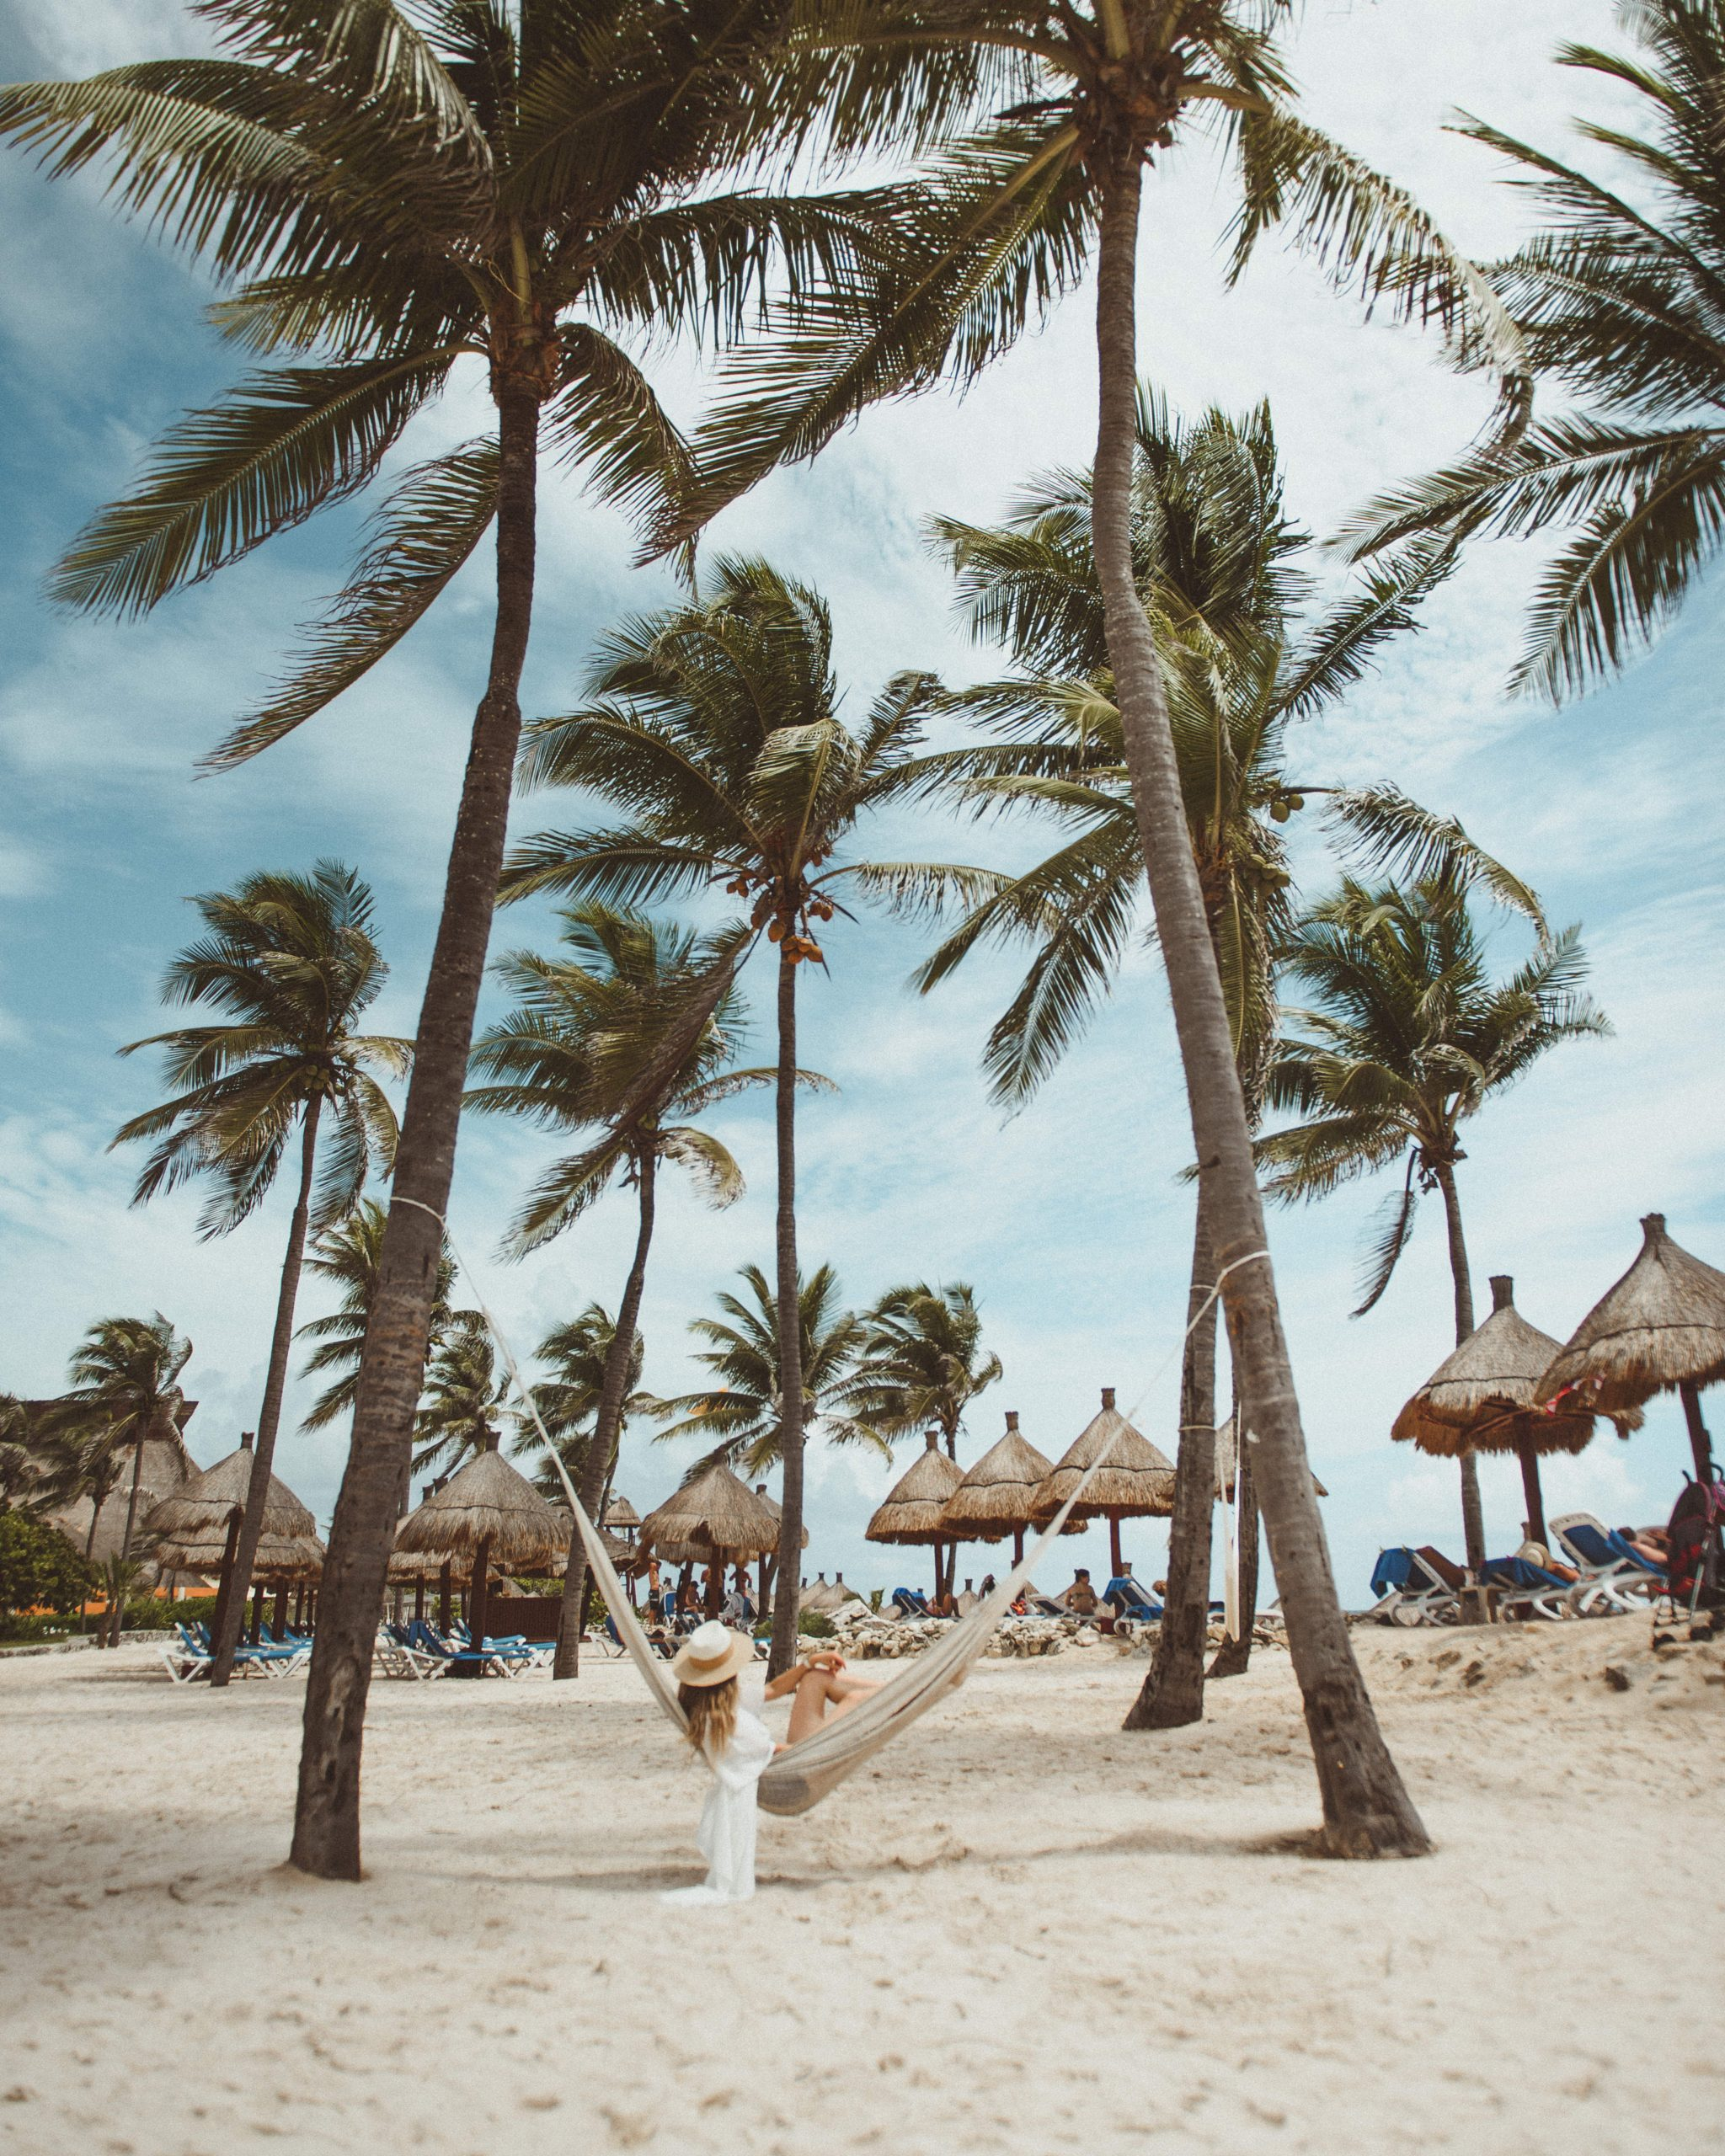 How to holiday best in Tulum, Mexico